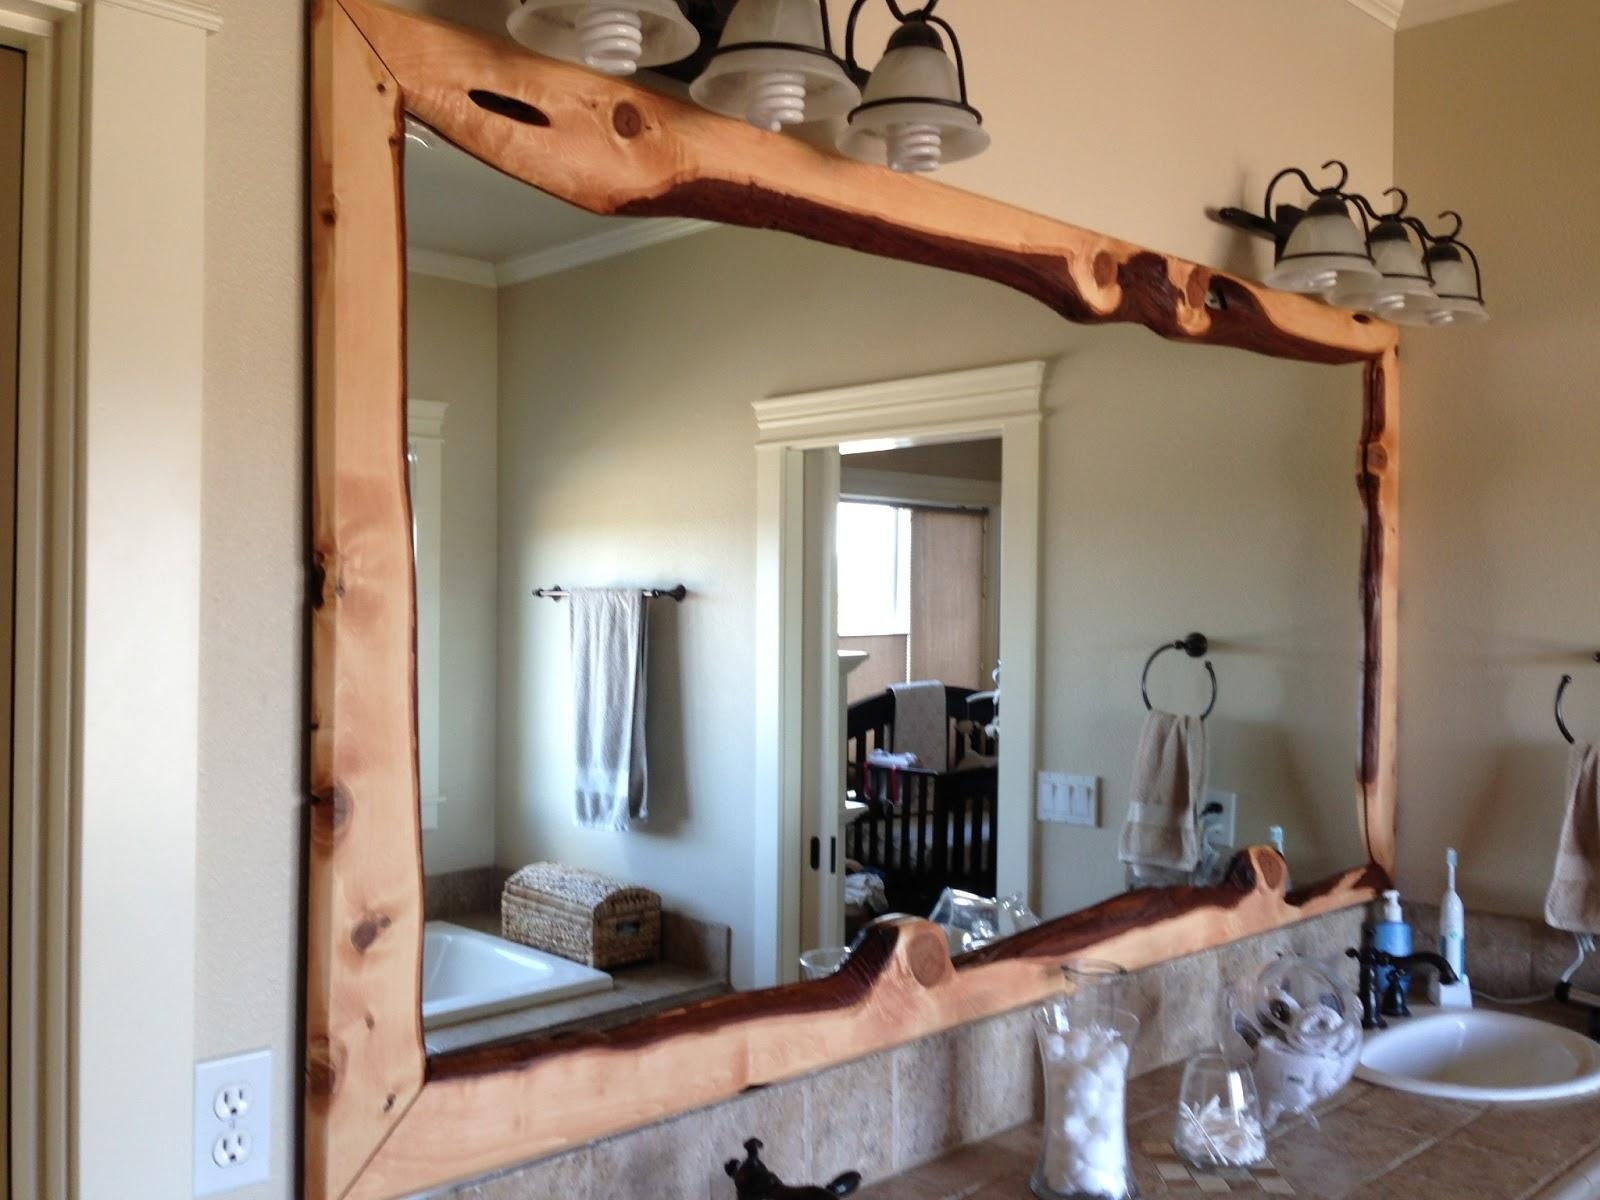 Decorative Wood Mirrors Natural Mirror Frame Ideas Bimumco Trends Inside Natural Wood Framed Mirrors (Image 6 of 20)